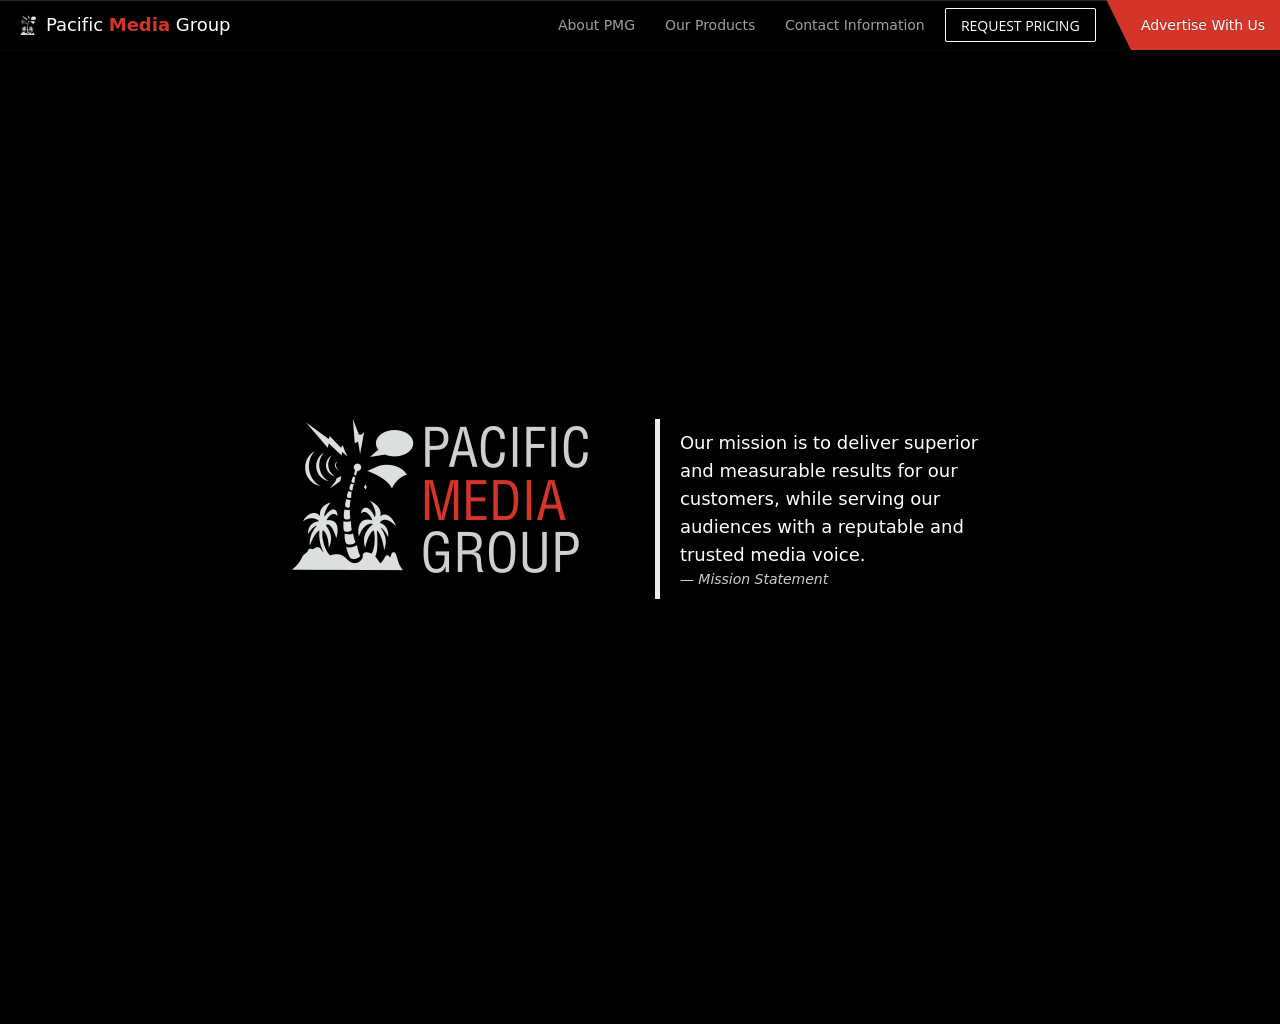 Pacific-Media-Group-Advertising-Reviews-Pricing